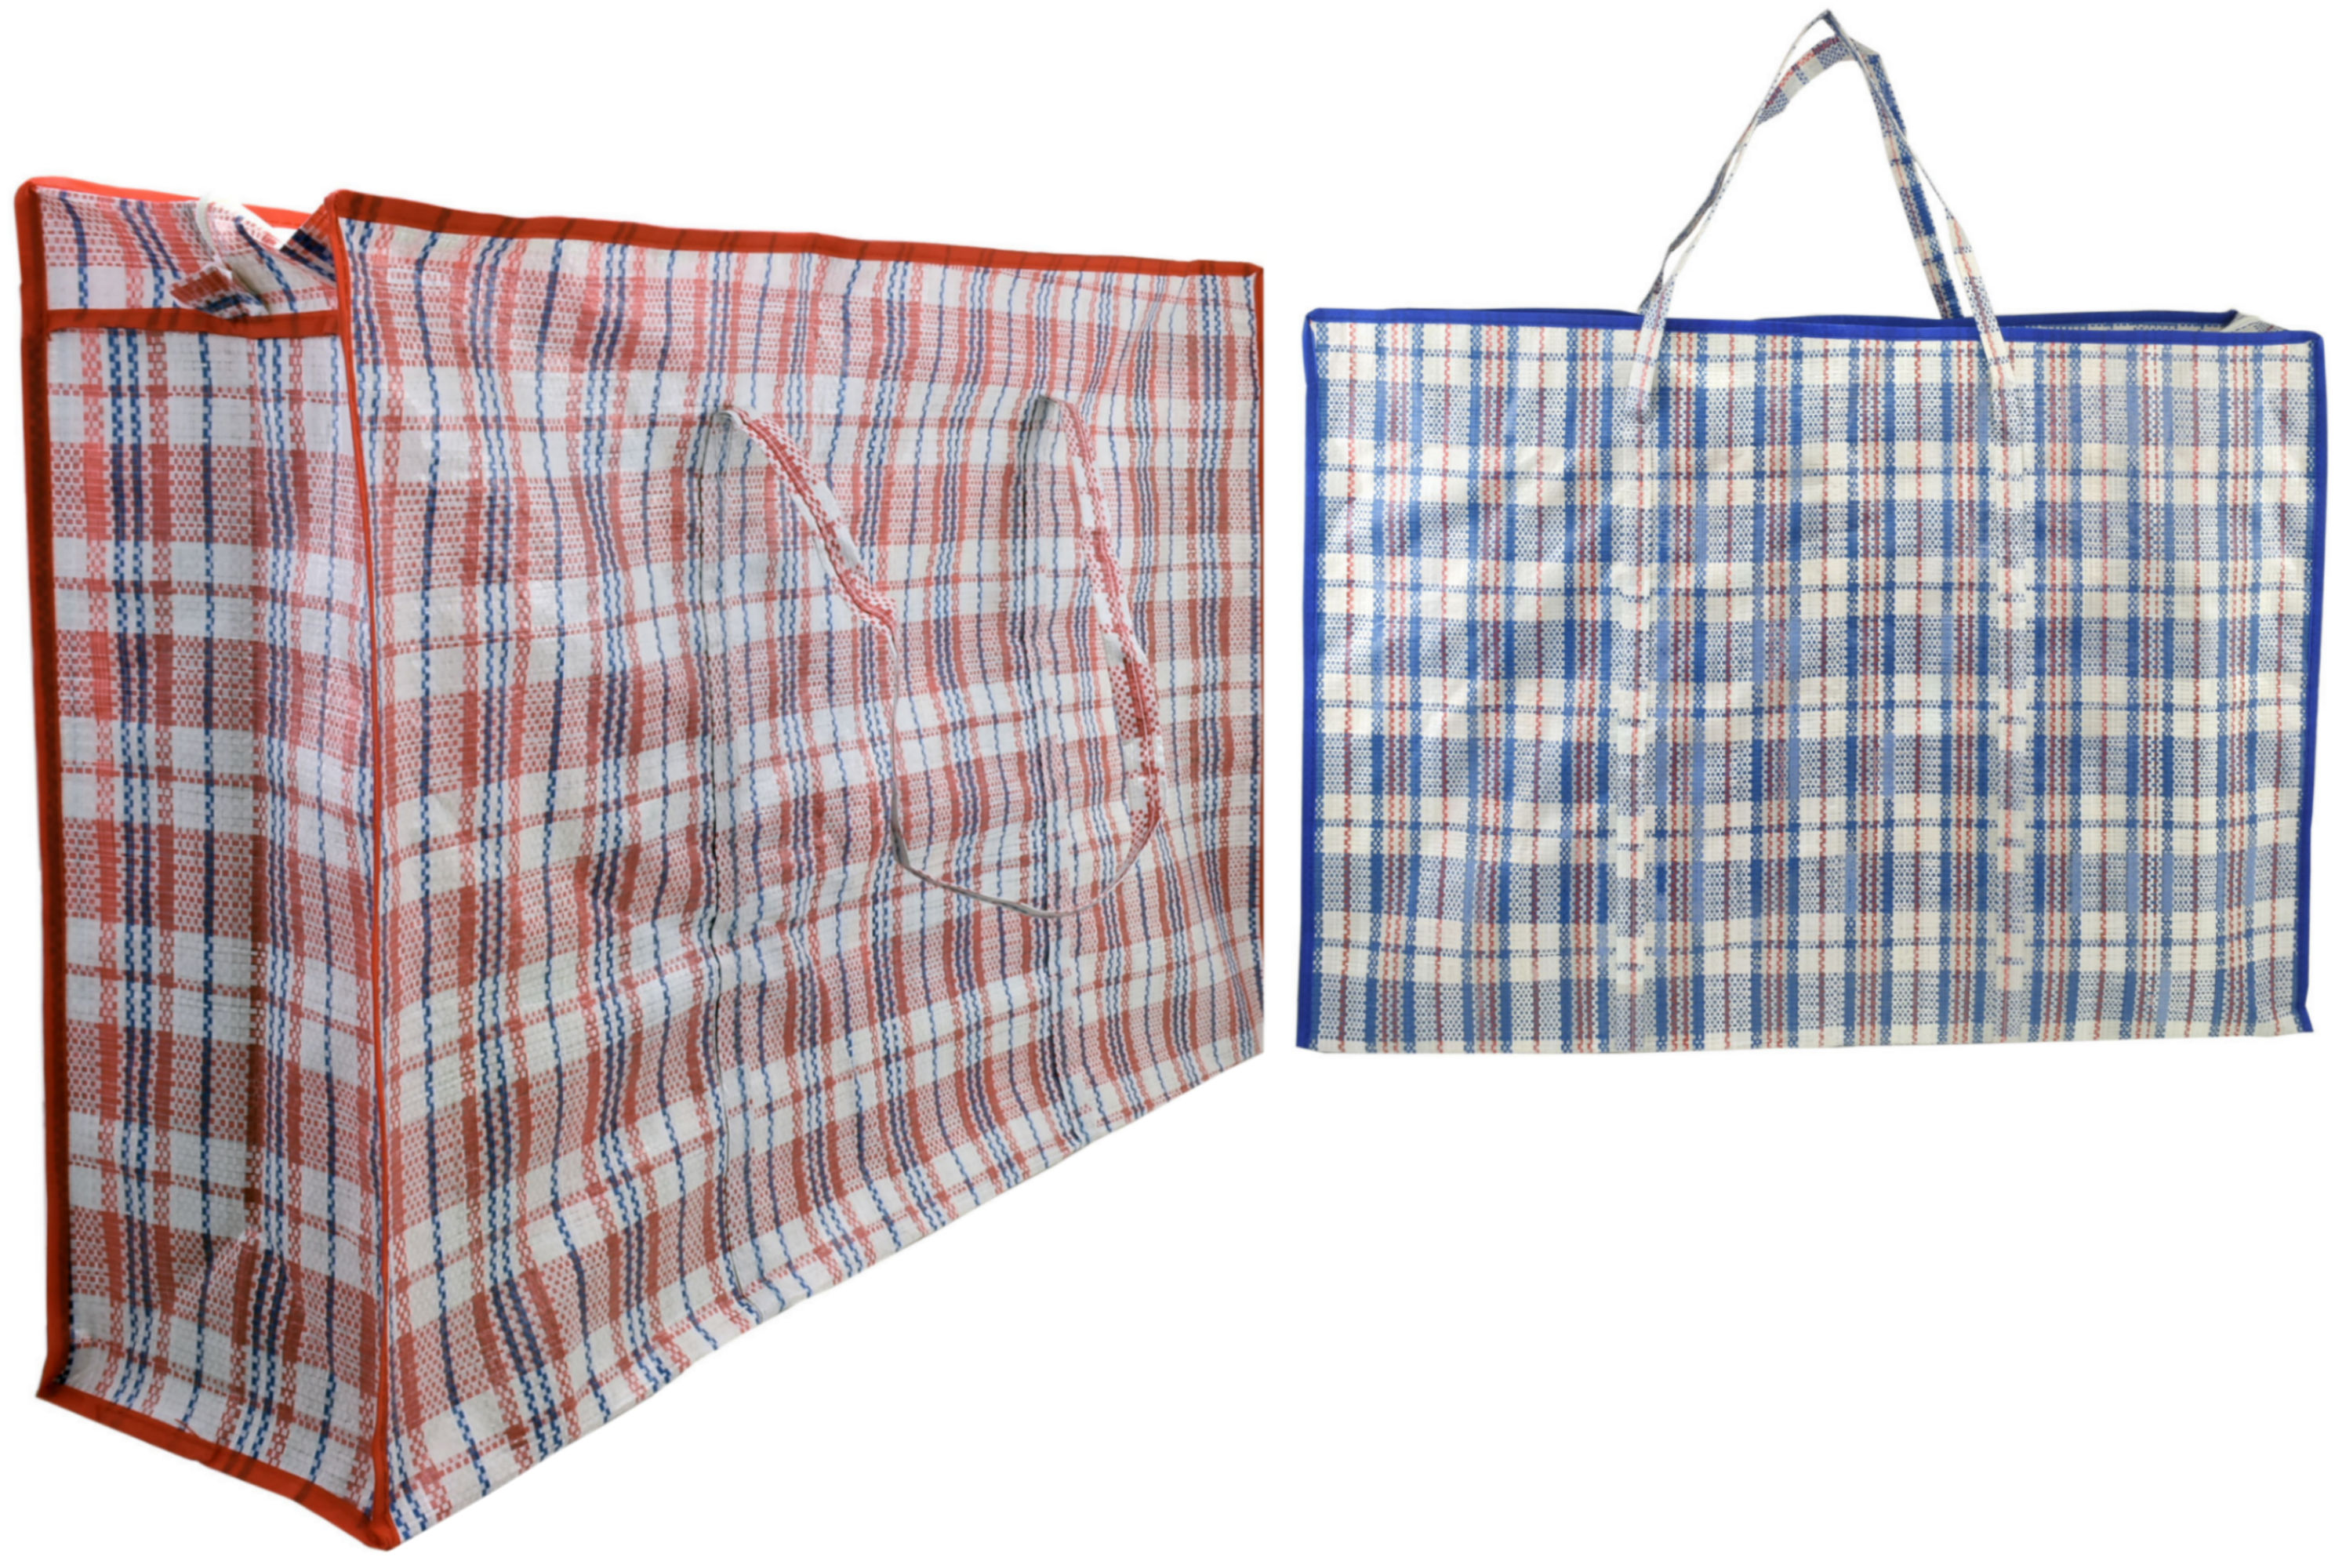 80x52x20cm Striped Shopping Bag 95gsm 2 Asst Red & Blue